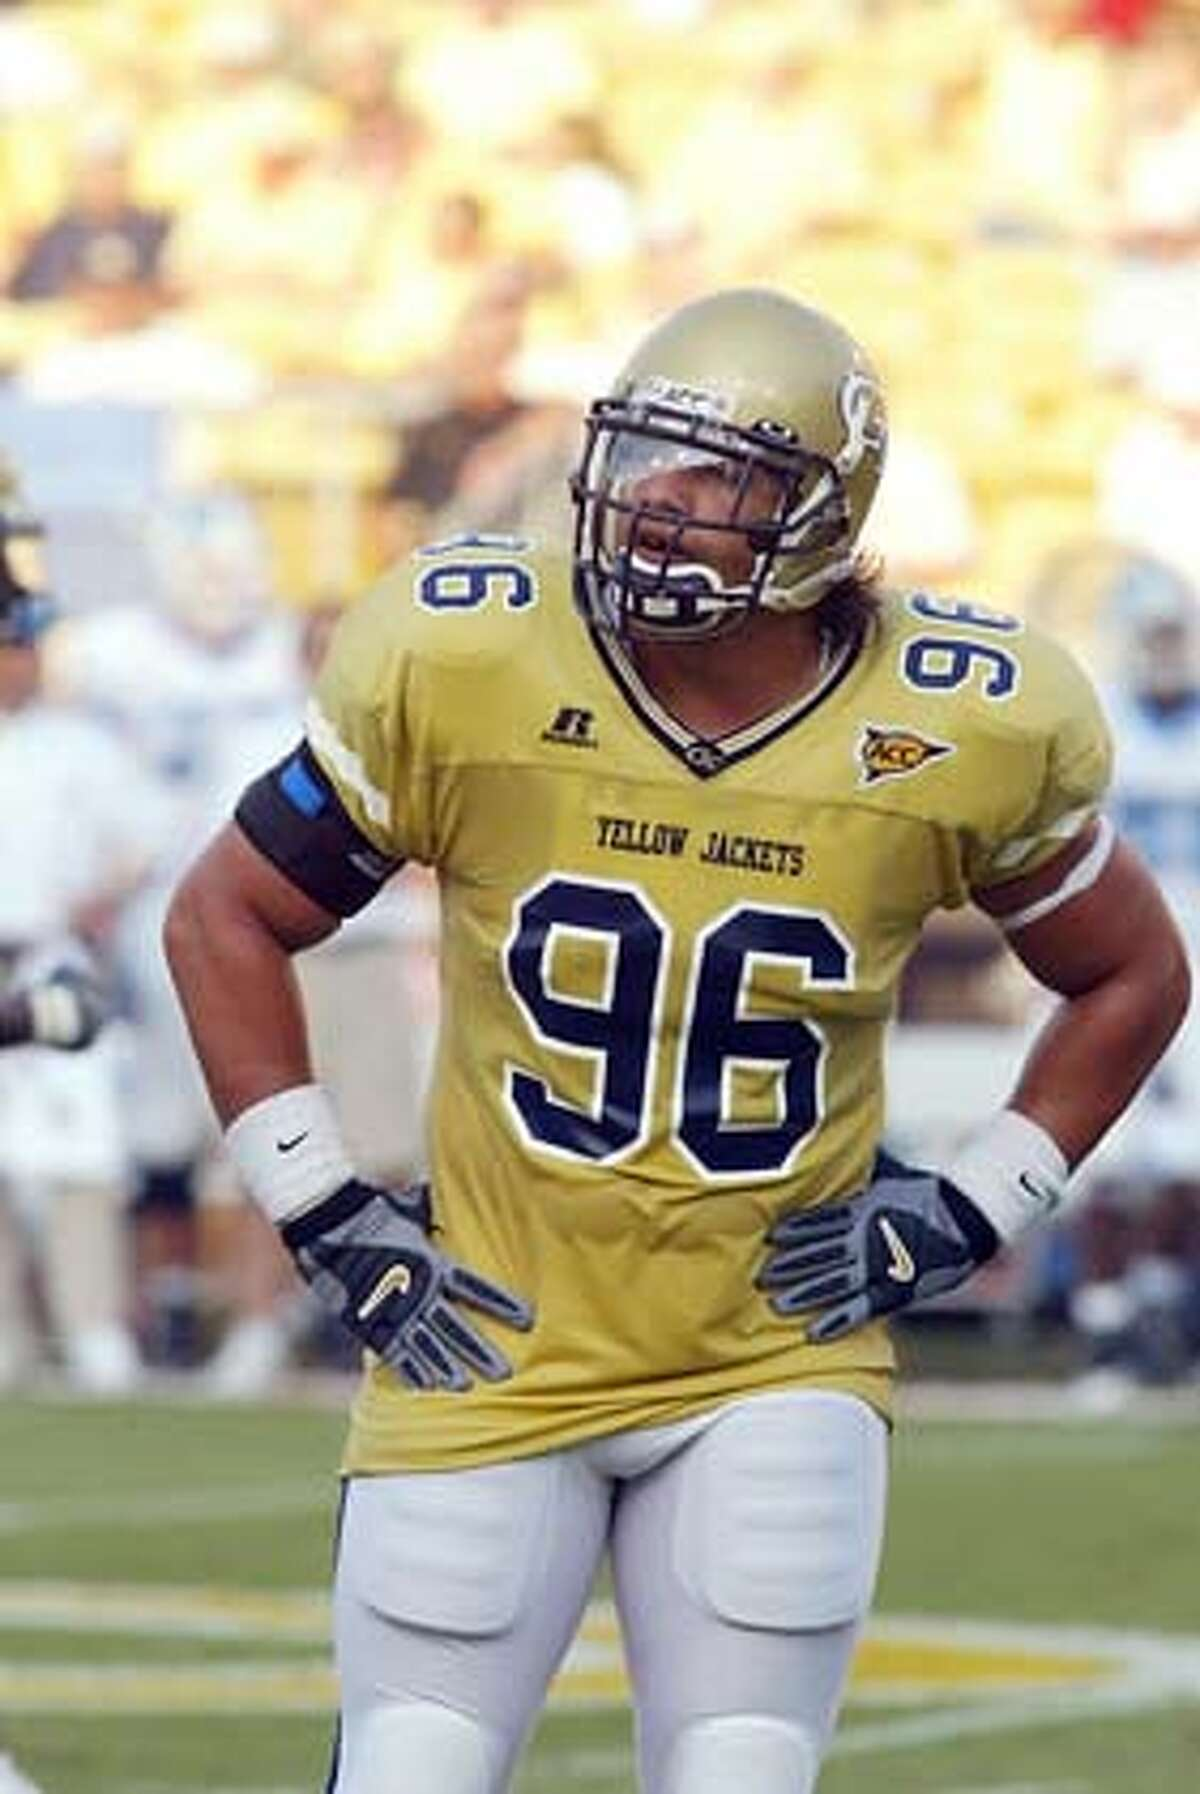 Joe Anoai, Georgia Tech, 2005. Credit: None, handout Ran on: 12-25-2005 Joe Anoai, a defensive tackle for Georgia Tech, says he might try pro wrestling, like his dad and uncle, if he doesnt make the NFL. Above, Anoai (center) huddles with his uncle, Afa (second from right), who with Anoais father (back row with hat) performed as the Wild Samoans tag team in the 80s. Ran on: 12-25-2005 Ran on: 12-25-2005 Ran on: 12-25-2005 Ran on: 12-25-2005 Joe Anoai, a defensive tackle for Georgia Tech, says he might try pro wrestling, like his dad and uncle, if he doesnt make the NFL. Above, Anoai (center) huddles with his uncle, Afa (second from right), who with Anoais father (back row with hat) performed as the Wild Samoans tag team in the 80s.